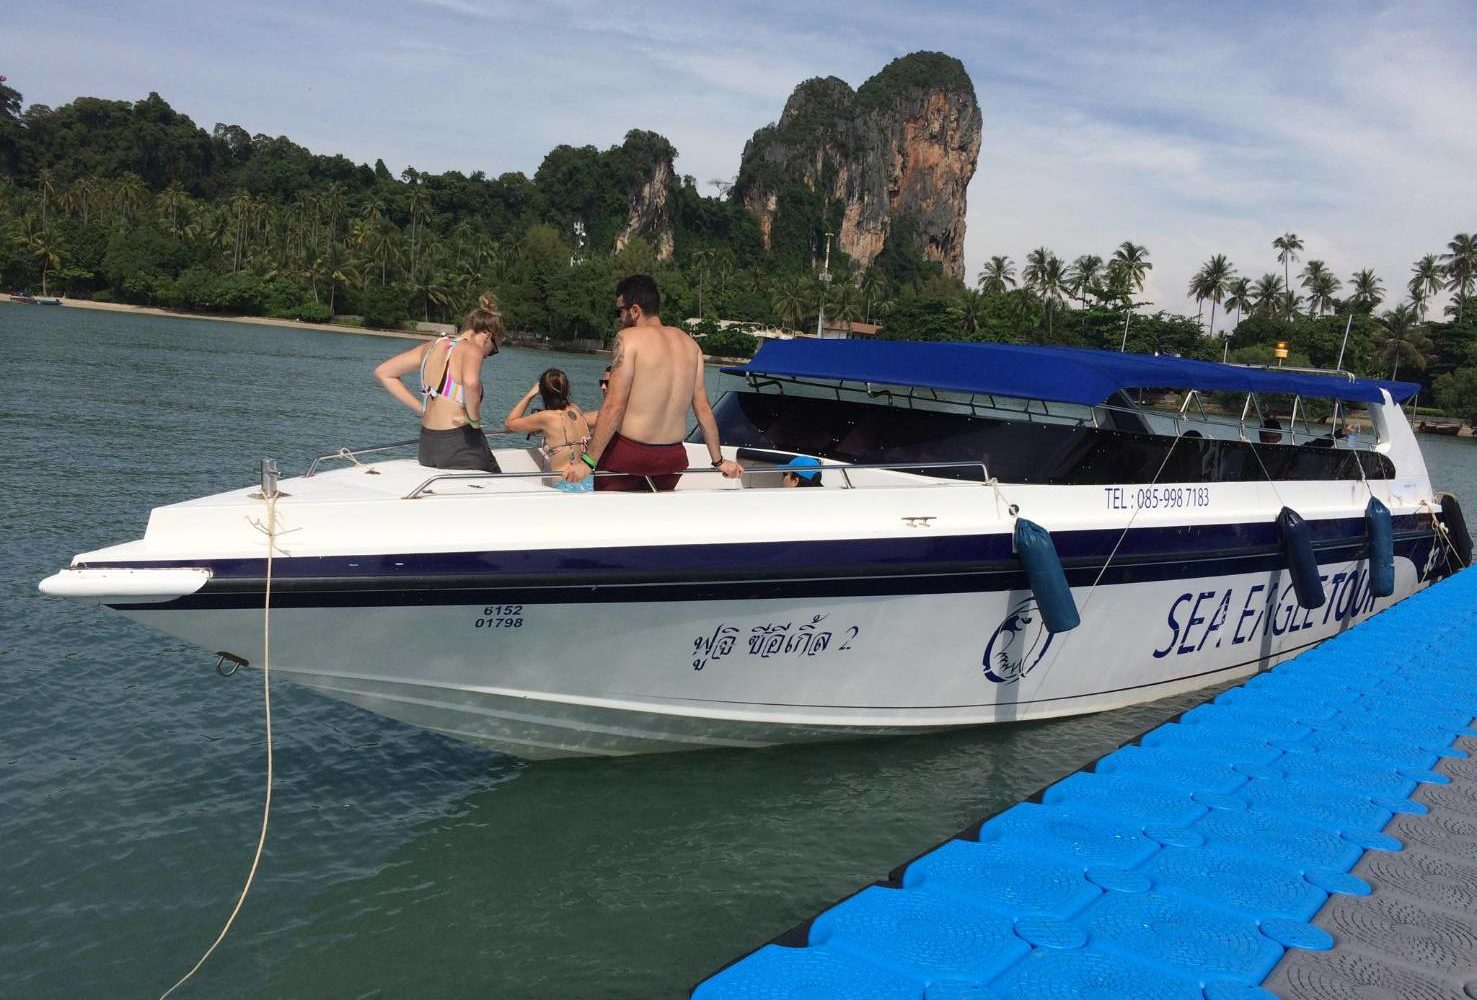 SEA EAGLE TOUR KRABI